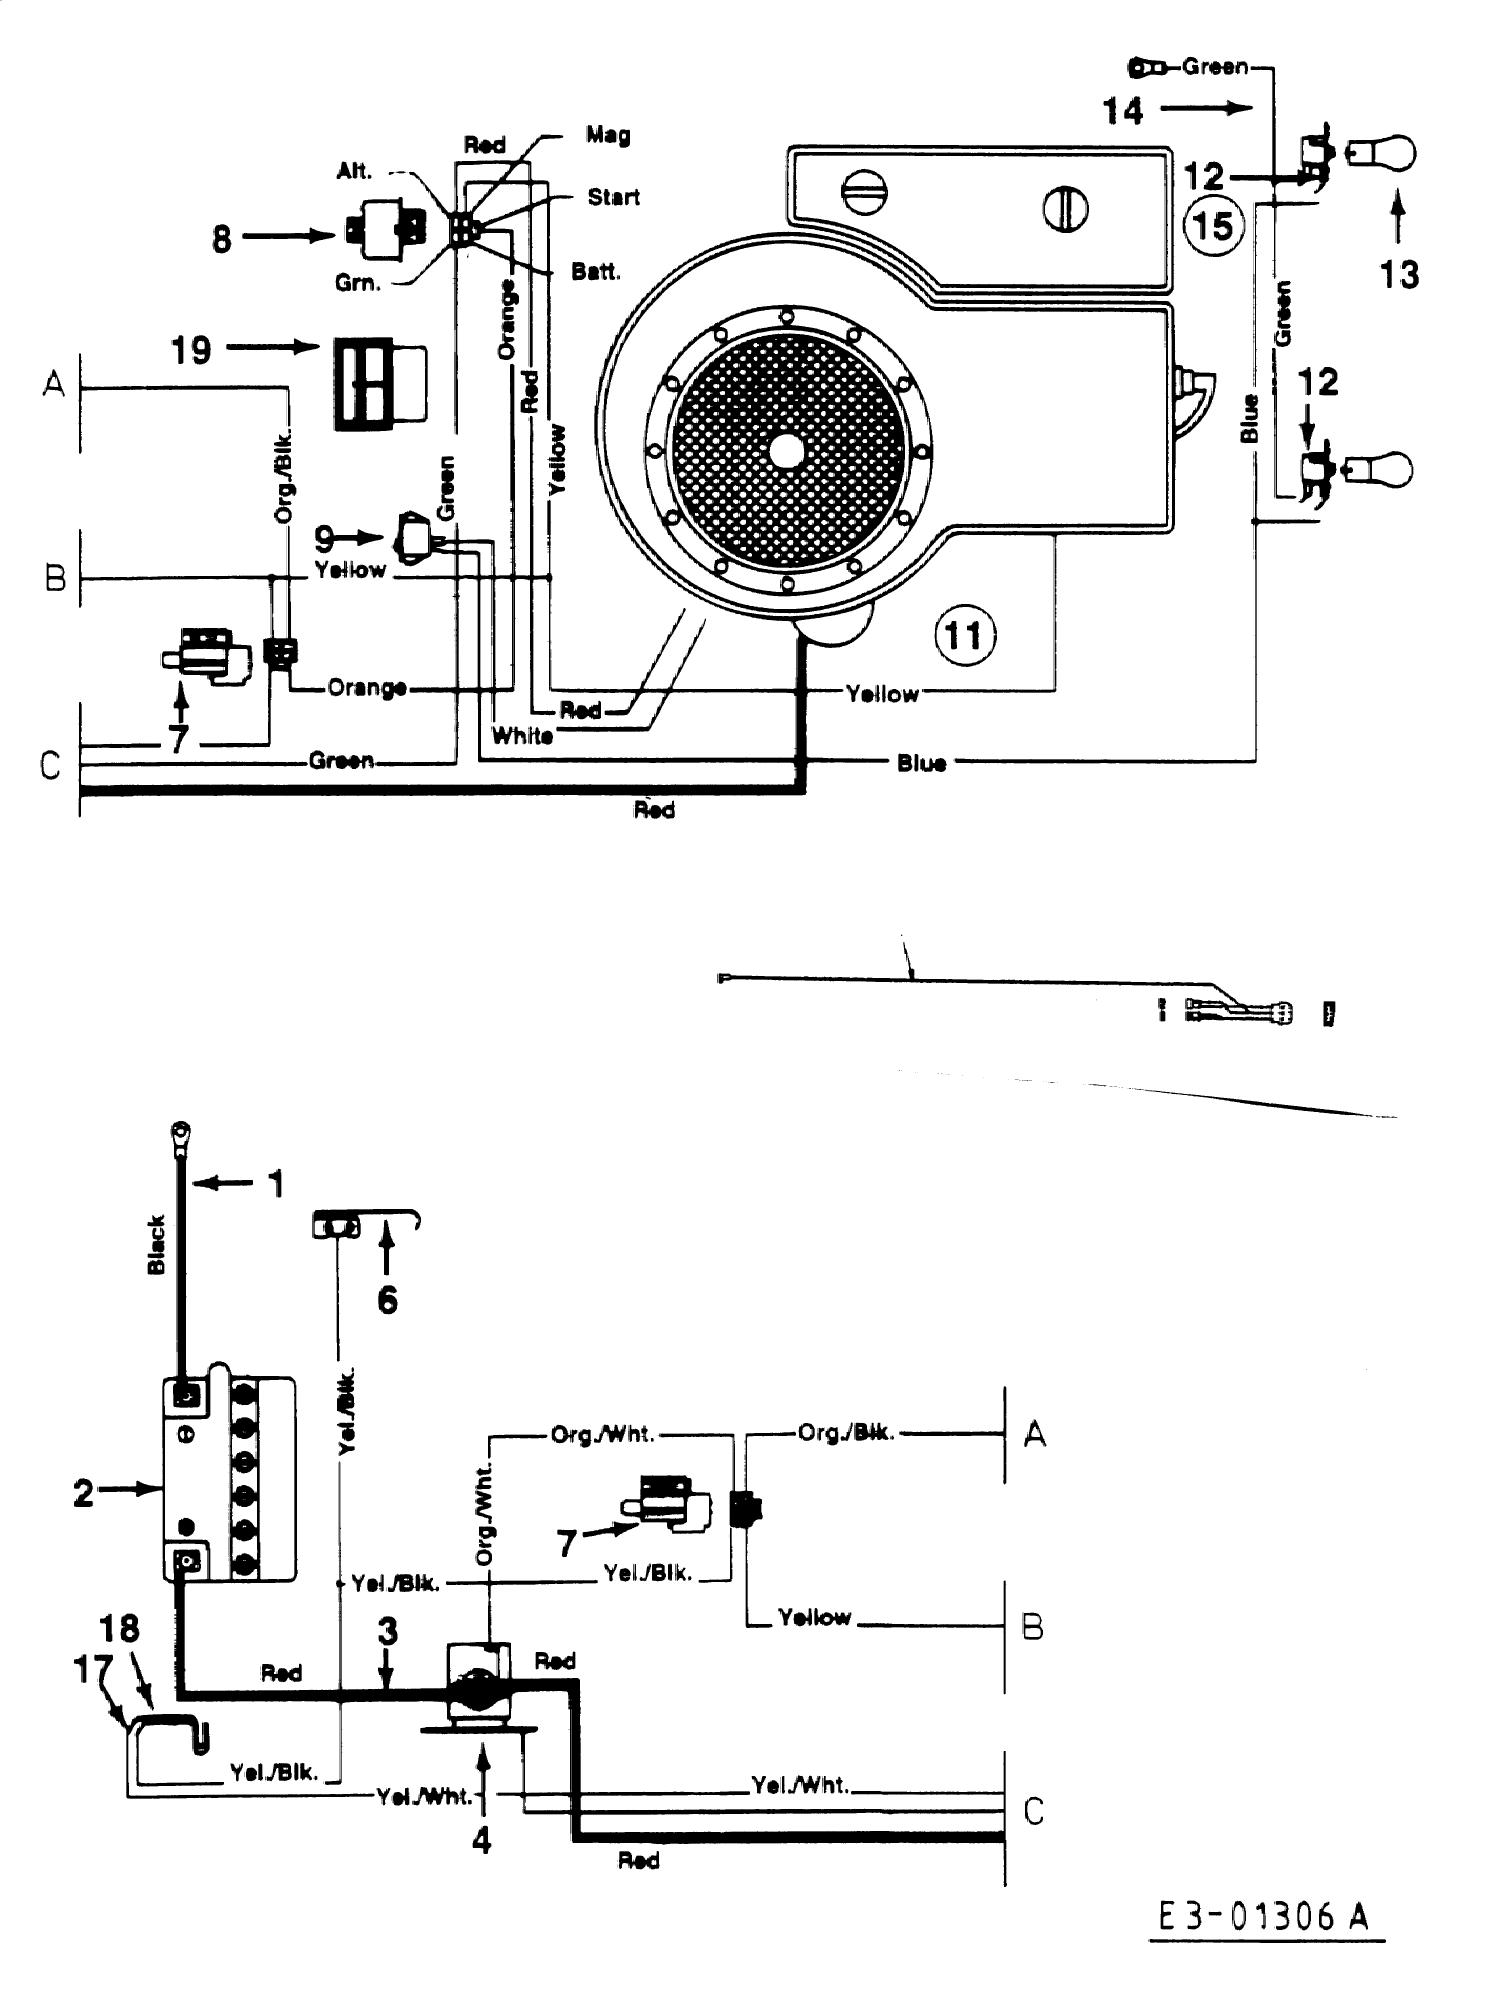 Yamaha Xs650 Starting System Circuit And Wiring Diagram moreover 310784842566 further 1989 GSXR1100 Wiring Diagram additionally Wire Schematic Yamaha Enduro in addition T24365694 Need wiring diagram 7 terminal ignition. on rs 125 wiring diagram